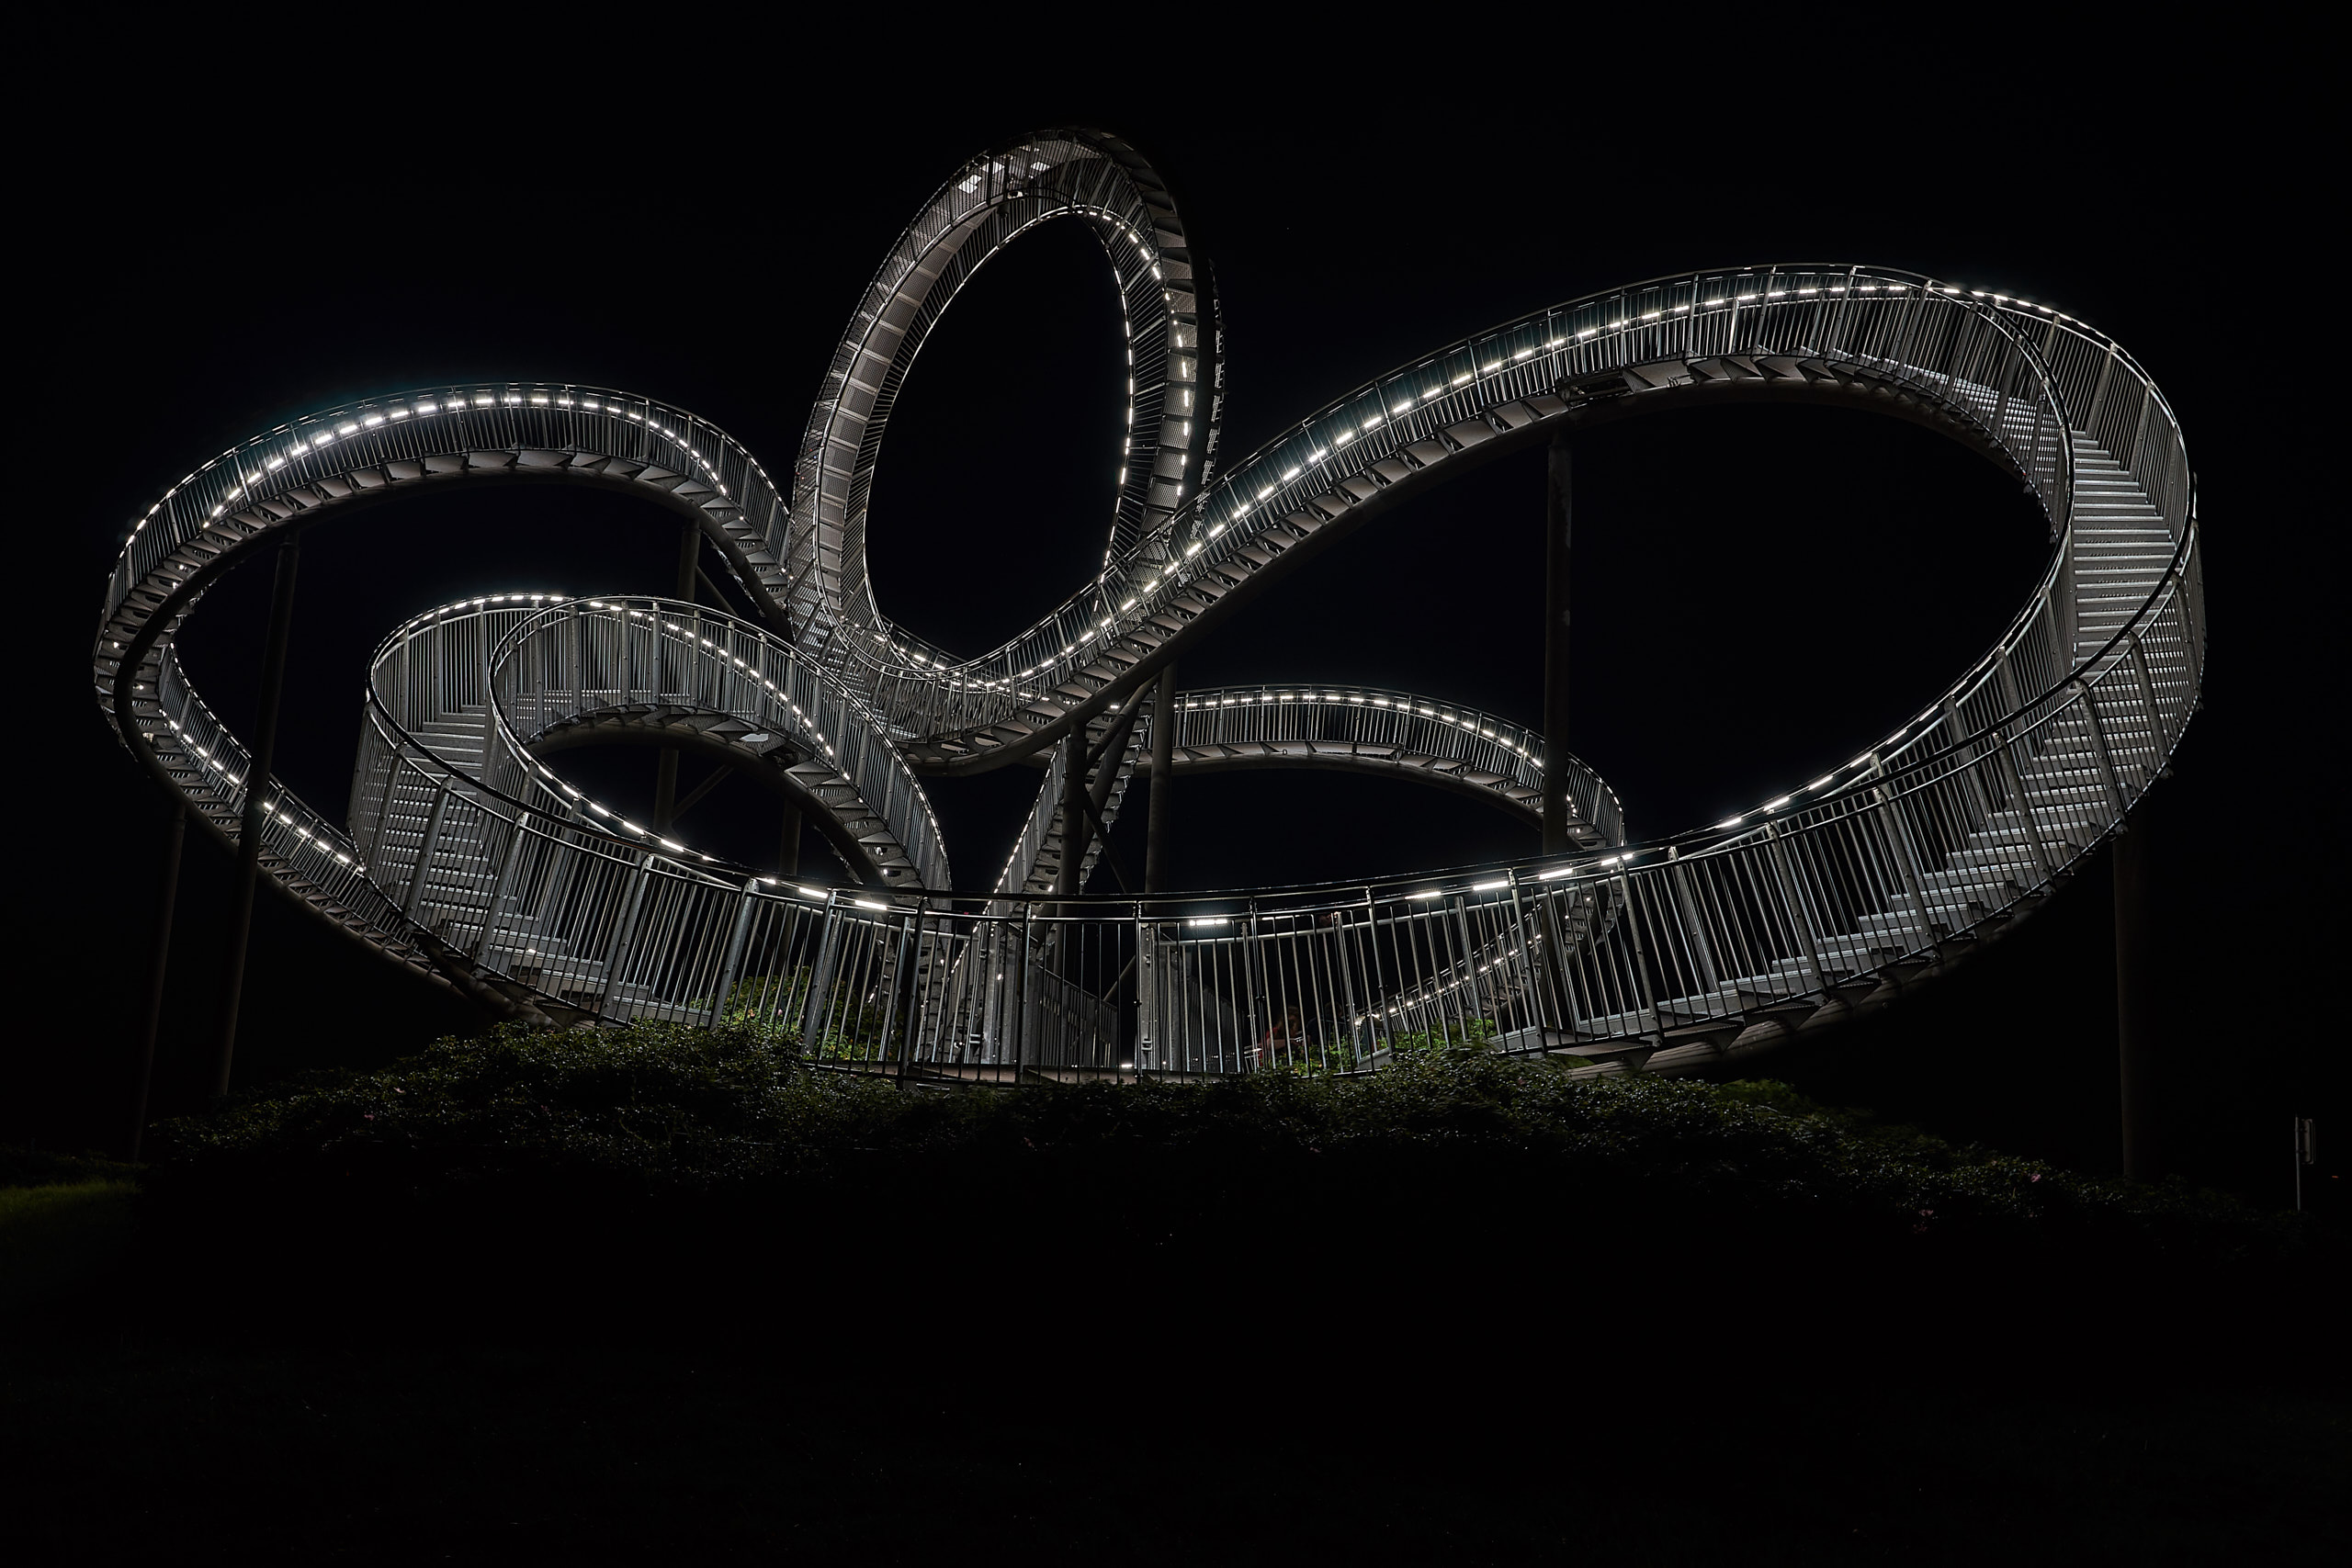 MetroPole Ruhr - Tiger and Turtle #05, © 2018 Helge Hasenau